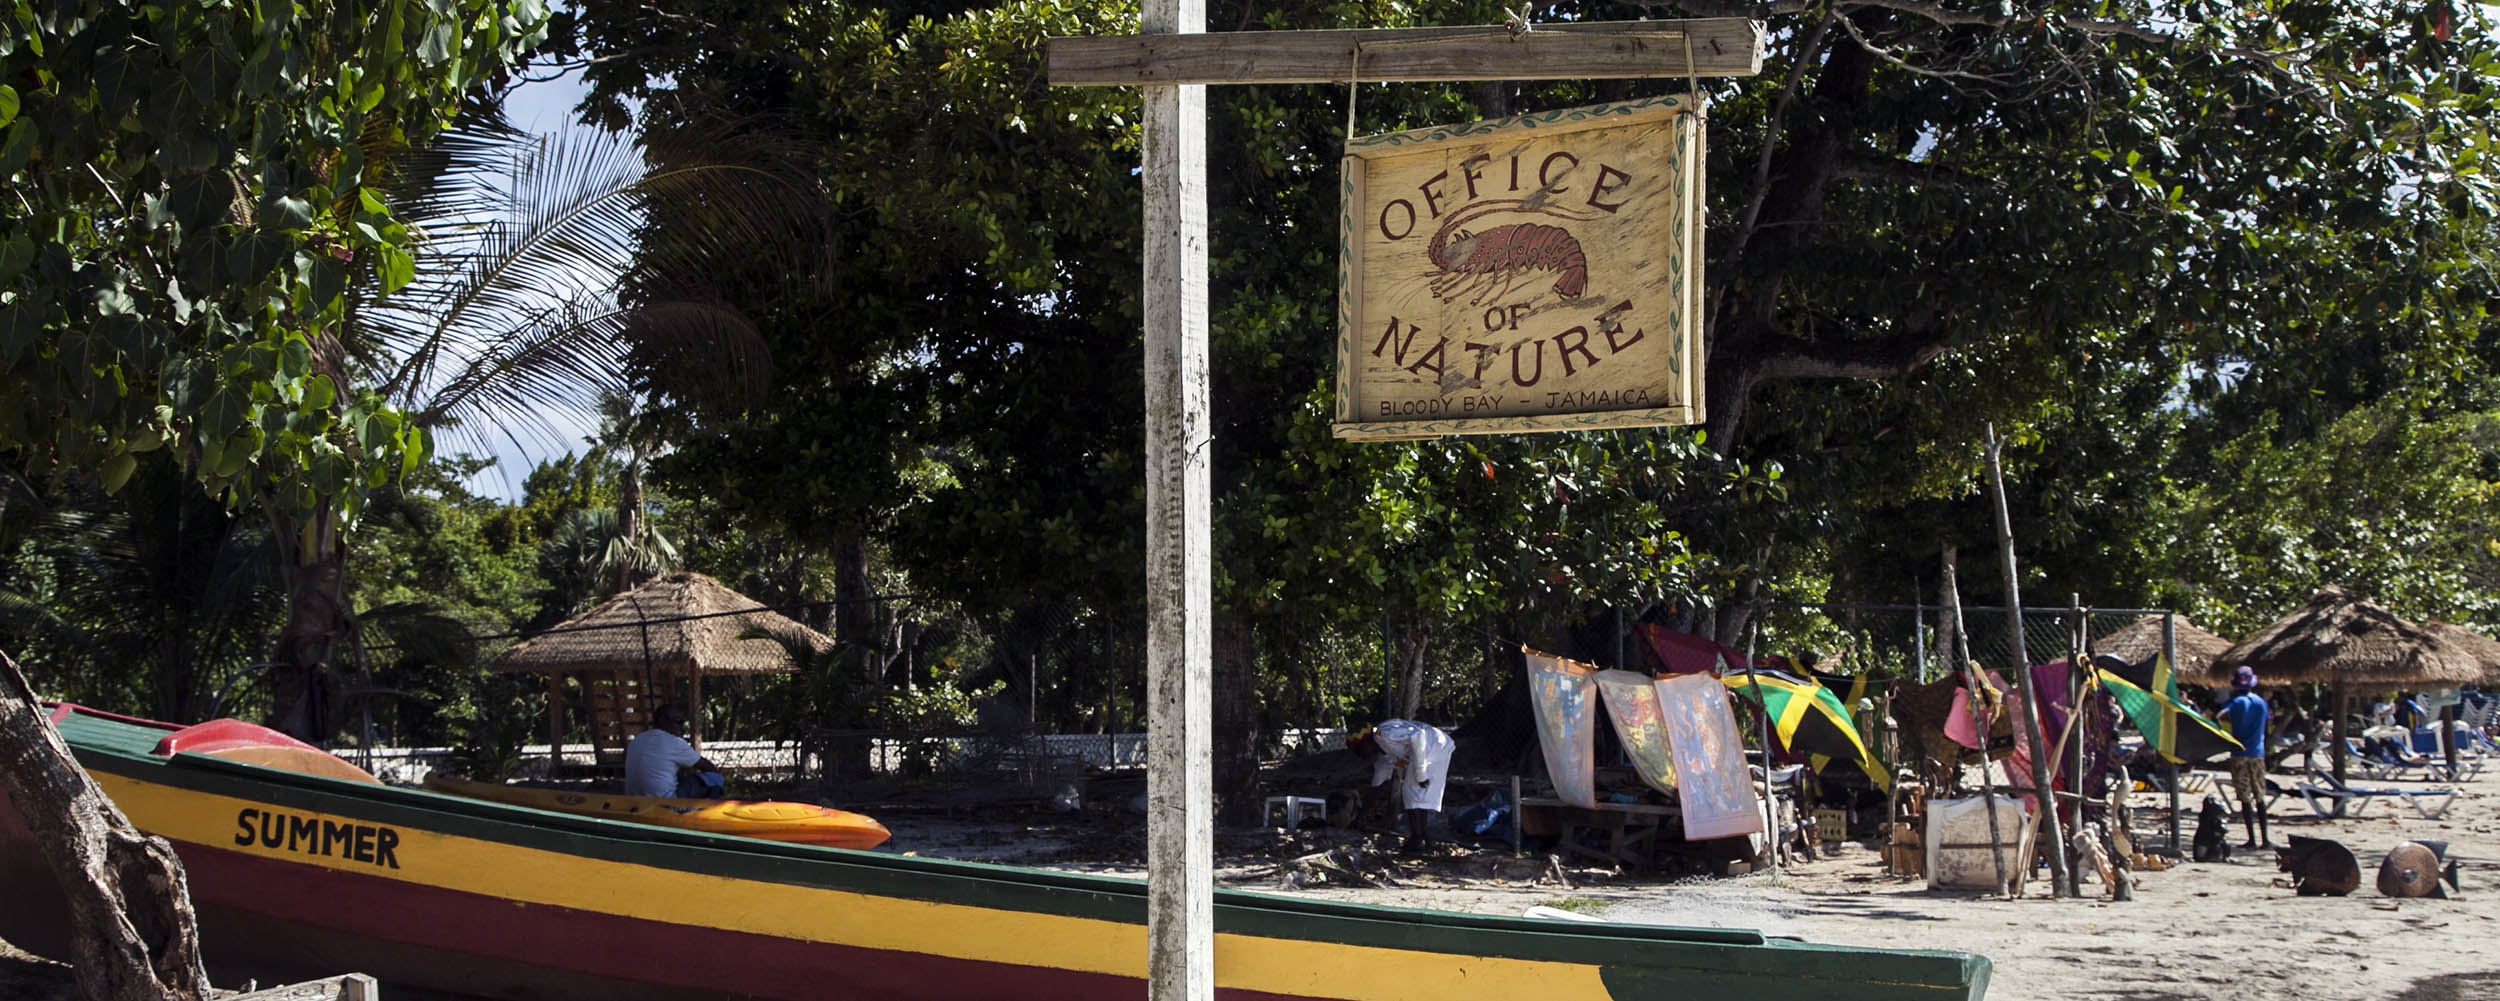 Office of Nature @ Negril Beach, Negril Jamaica